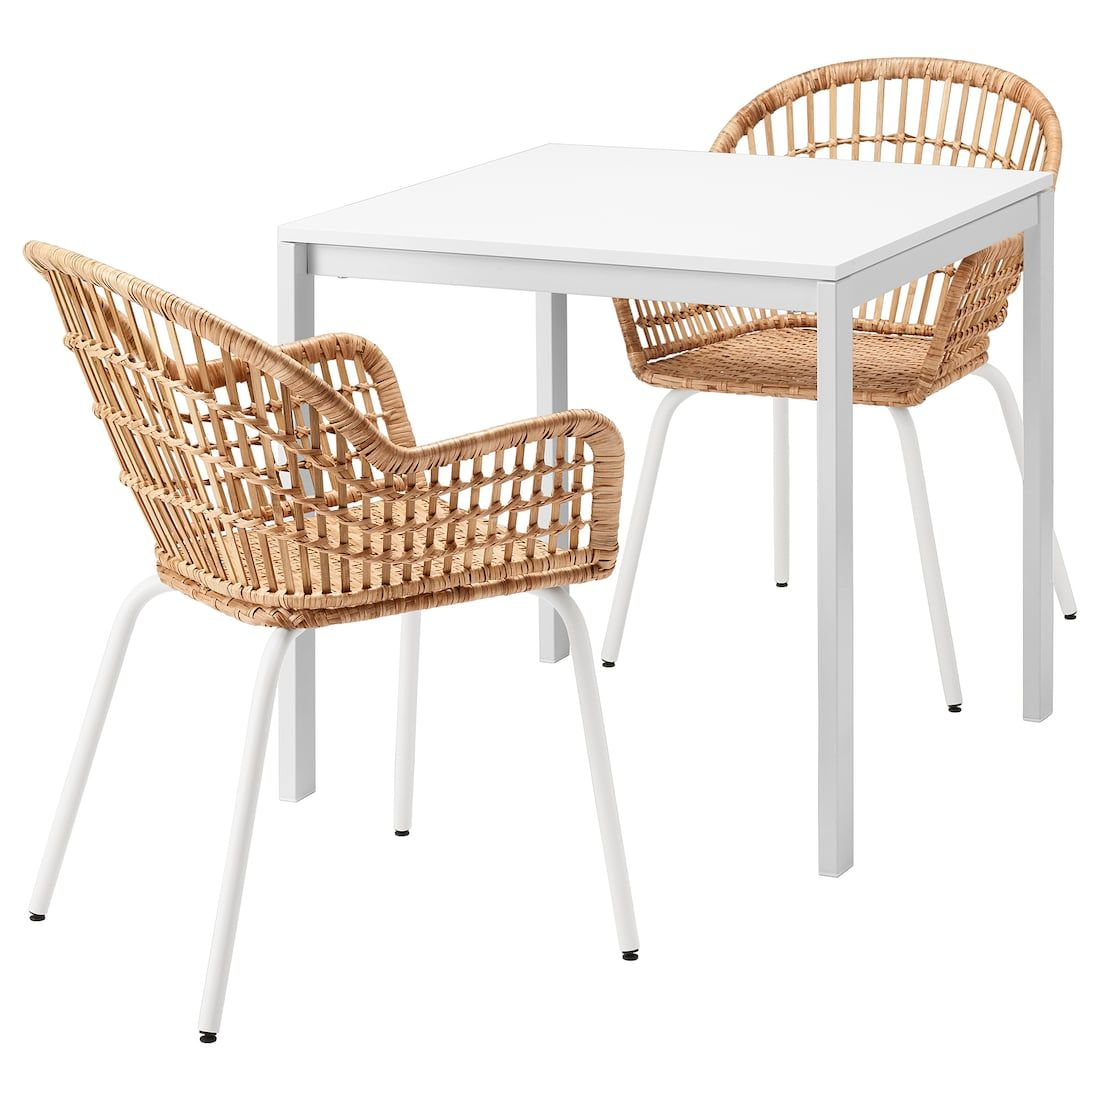 37+ Small rattan dining table Best Seller